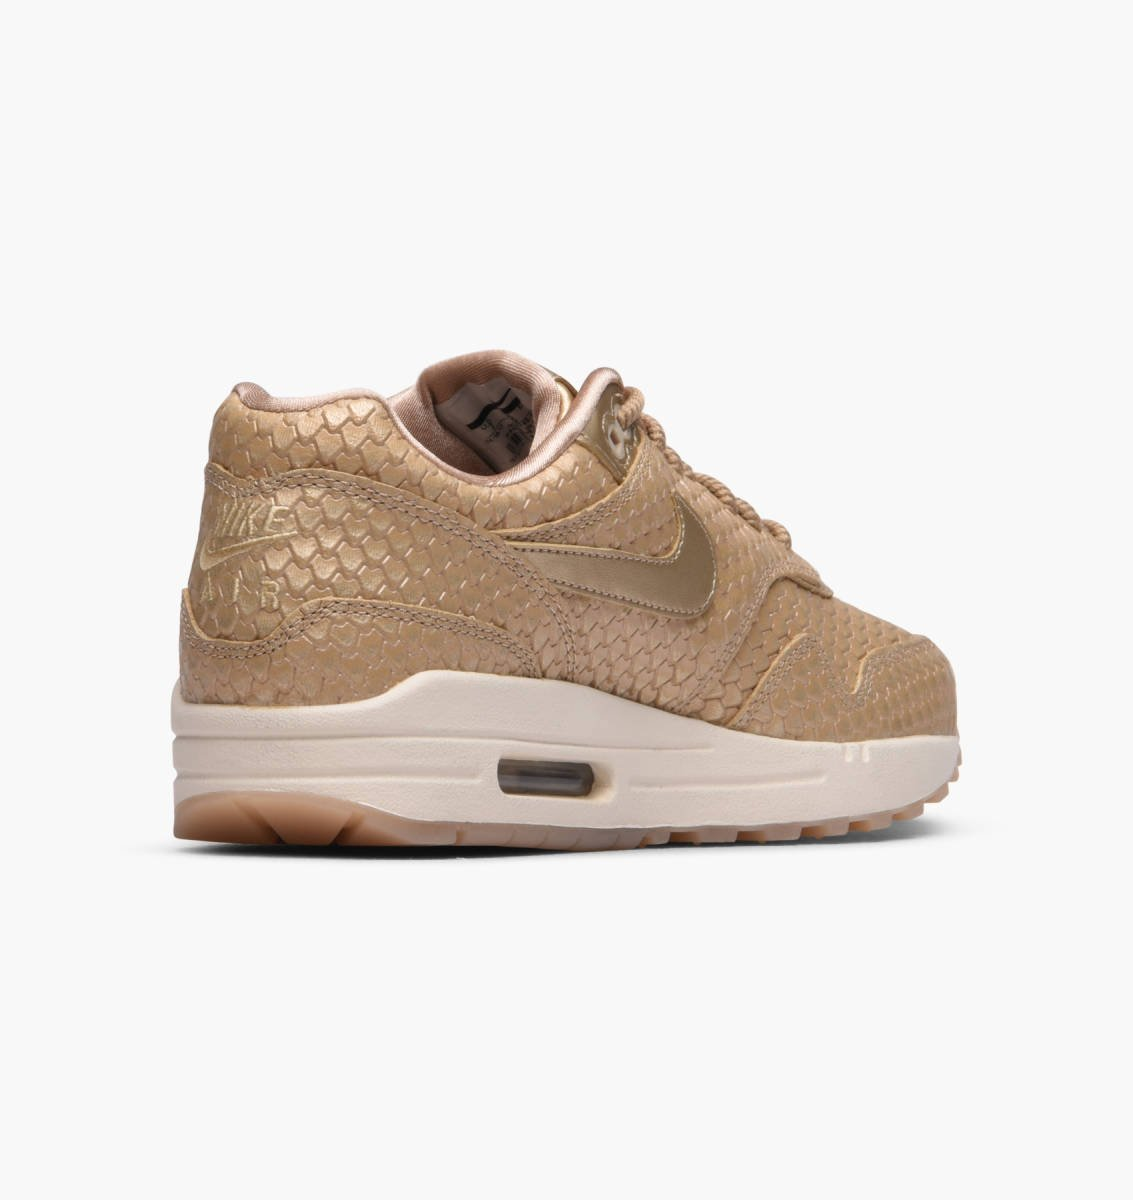 Nike Wmns Air Max 1 Premium 454746 900 beige| Orange Jungle